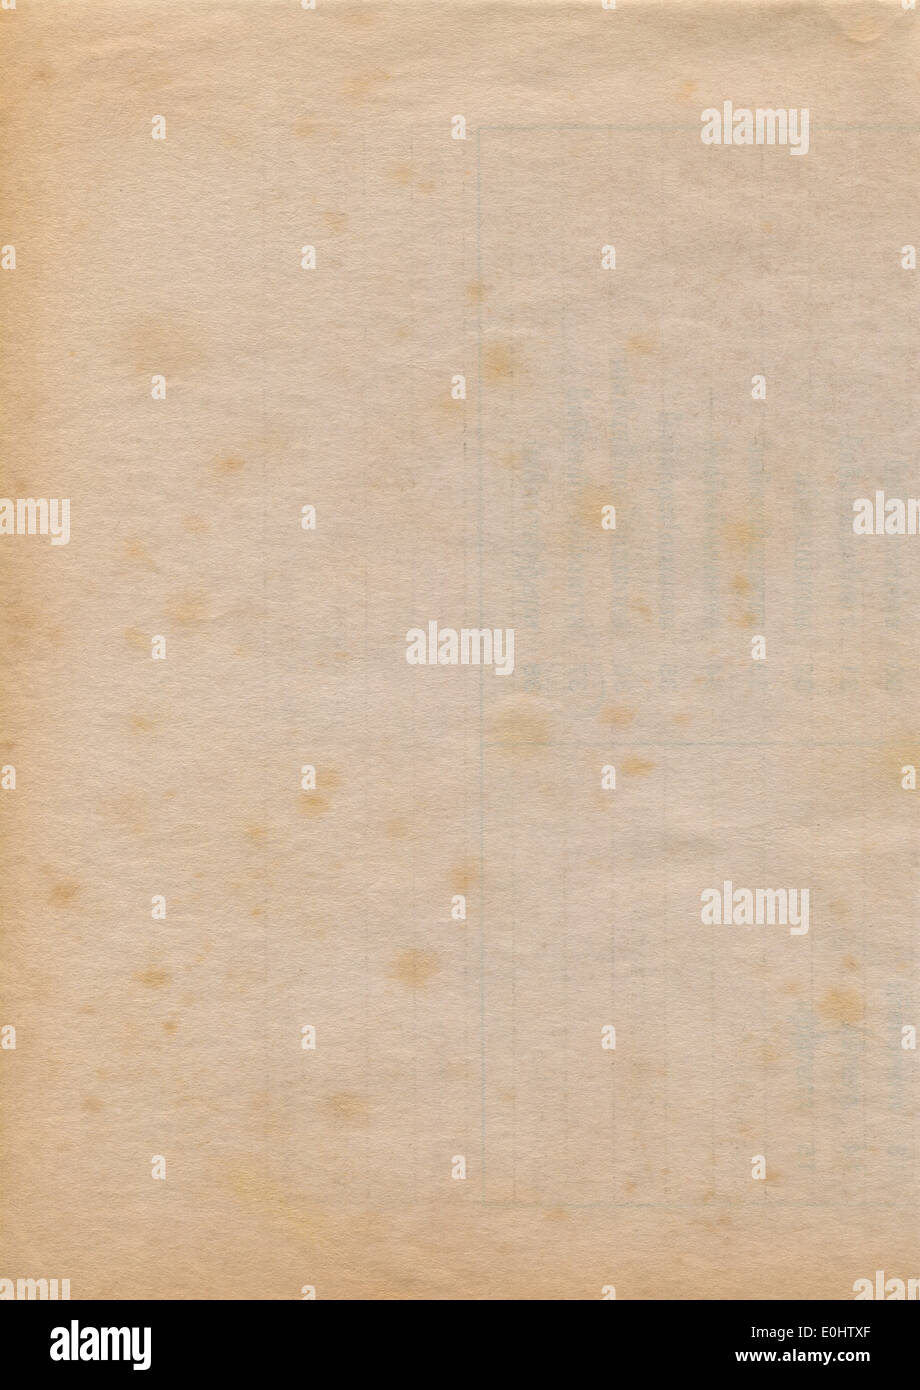 Old paper texture - Stock Image